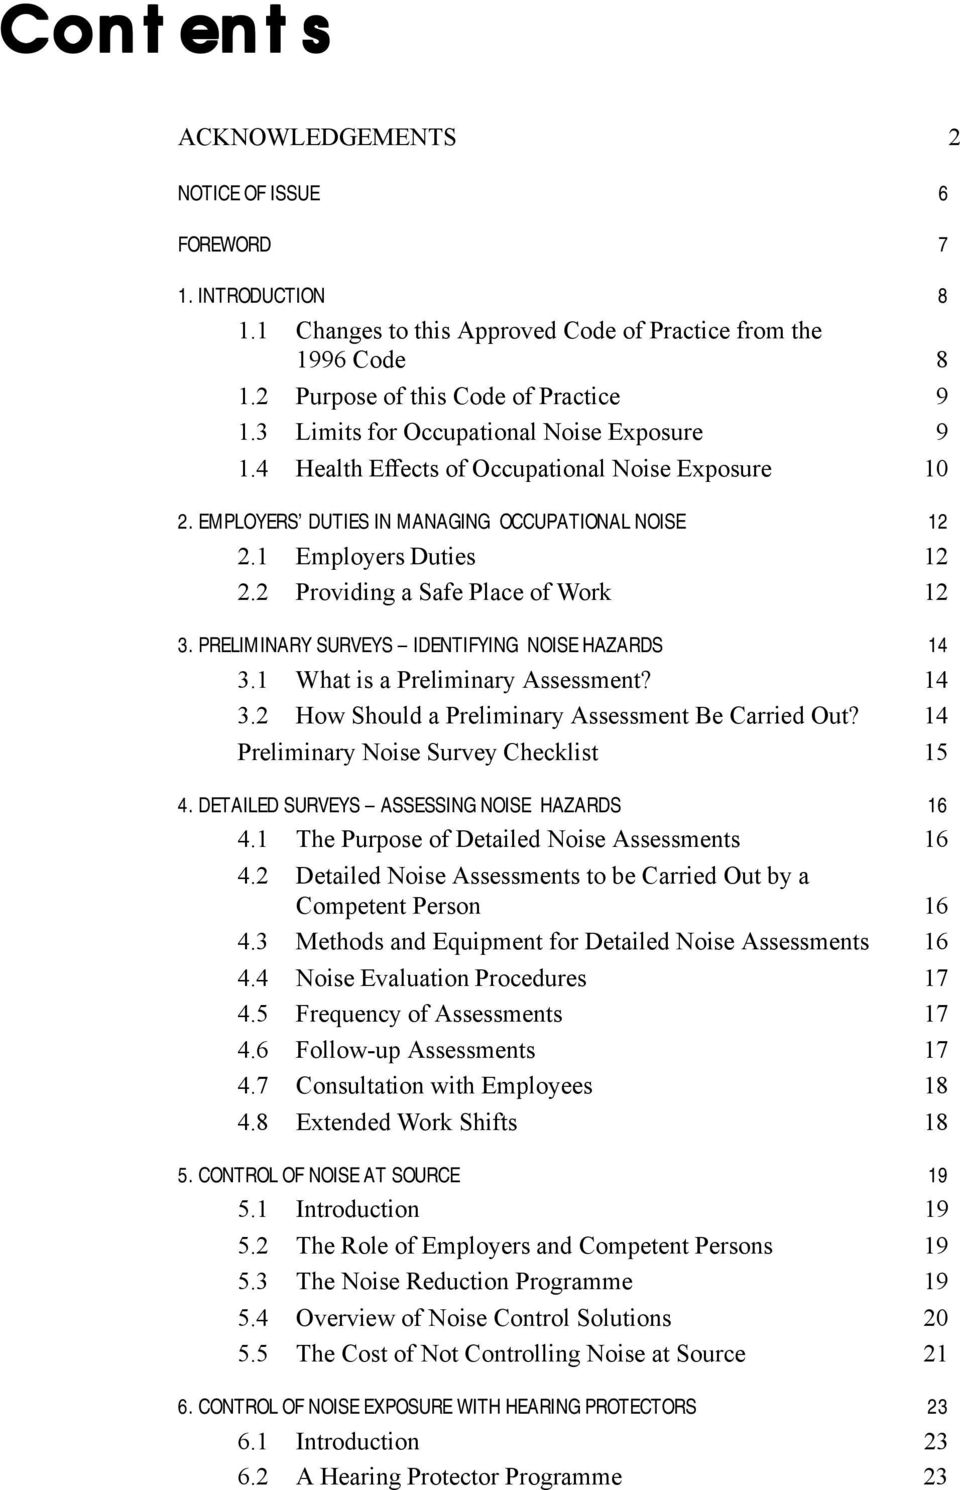 APPROVED CODE OF PRACTICE FOR THE MANAGEMENT OF NOISE IN THE